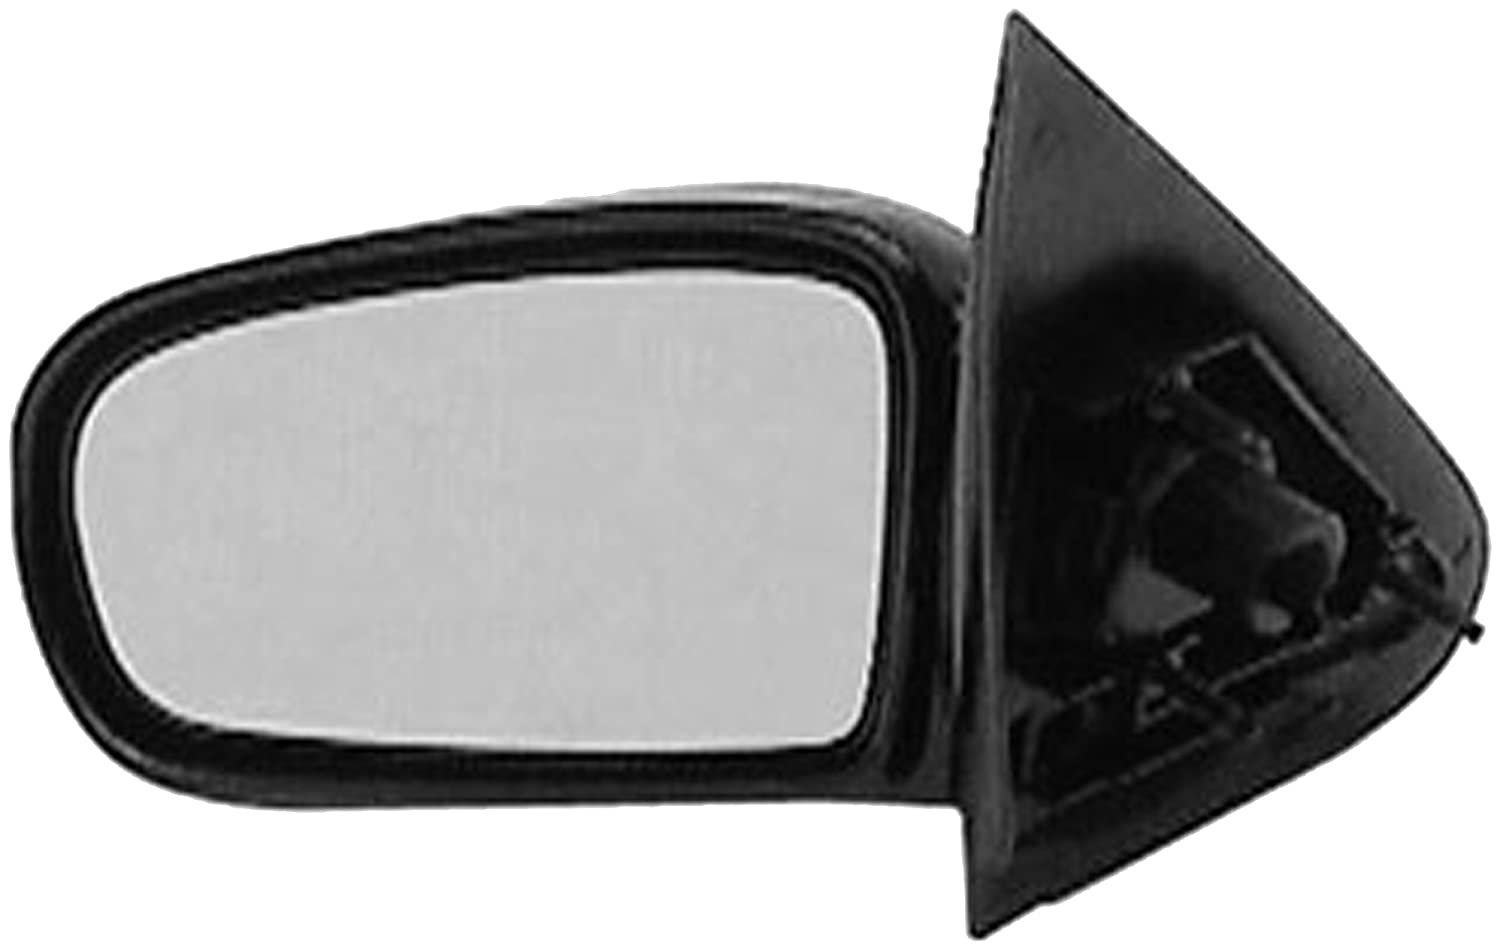 Dorman 955-312 Chevrolet Cavalier Manual Remote Replacement Passenger Side Mirror